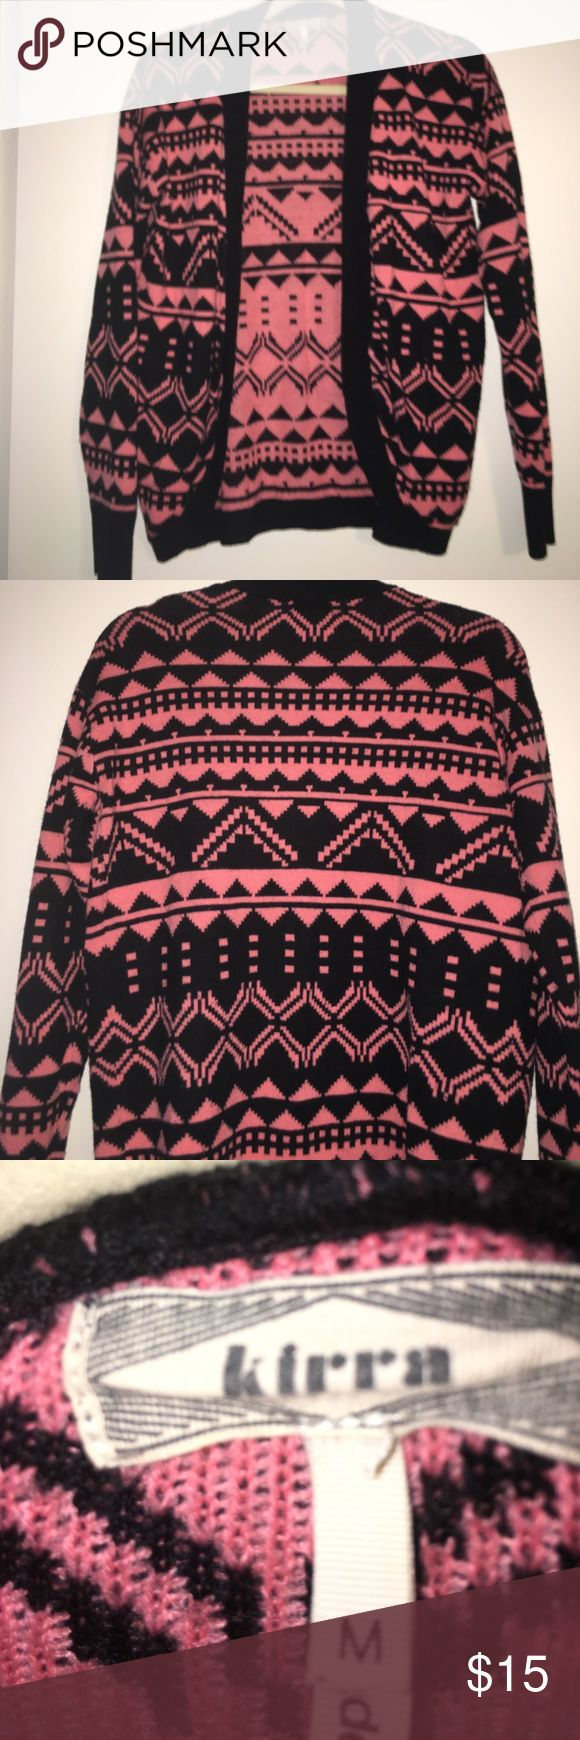 Aztec sweater Pink and black Aztec print cardigan from pacsun PacSun Sweaters Cardigans